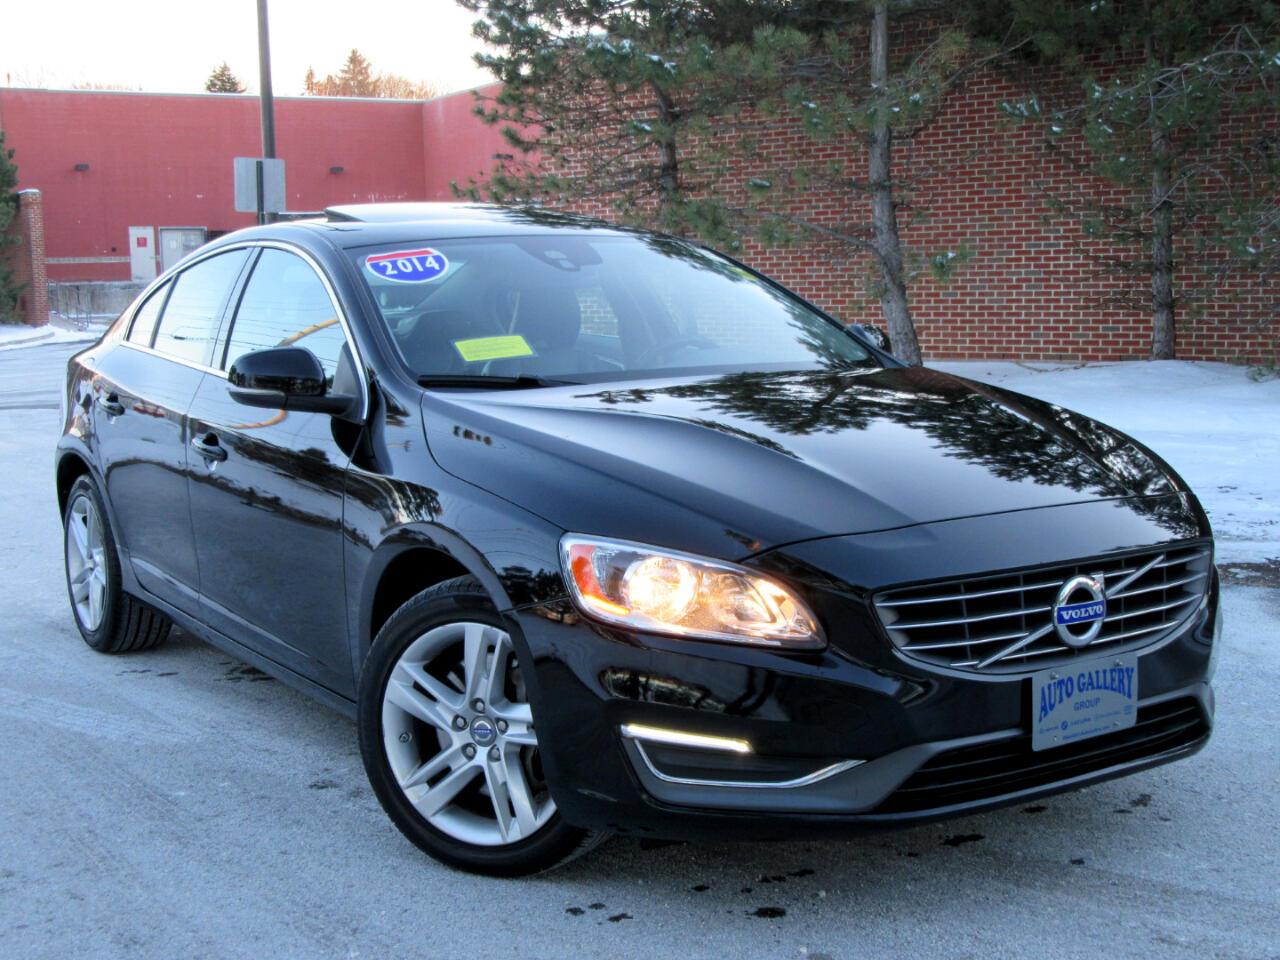 2014 Volvo S60 4 dr Sdn T5 AWD Navigation Backup Camera  Leather